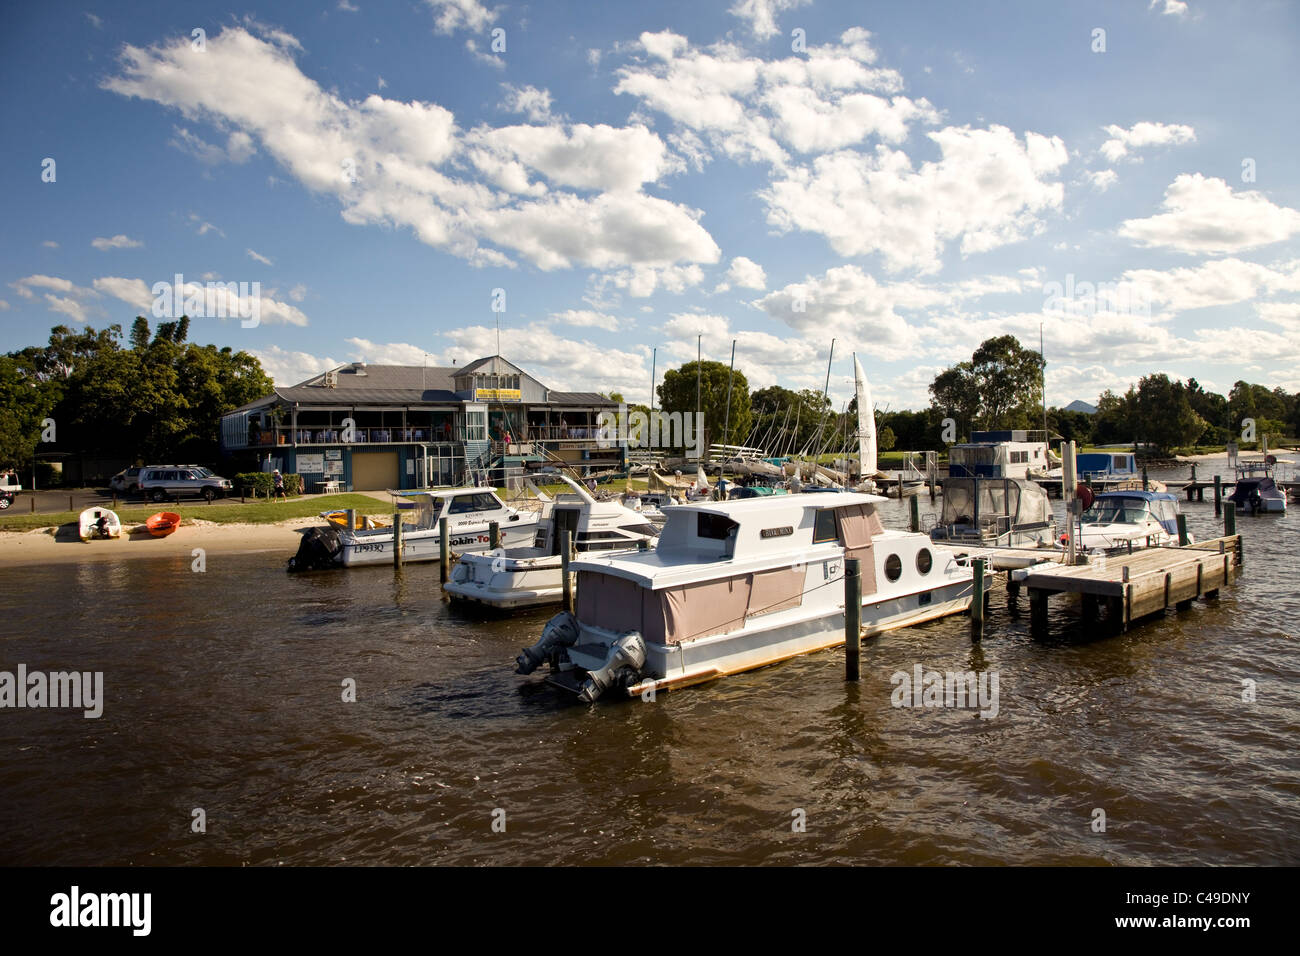 Boats in the estuary at Noosa, Queensland. Stock Photo